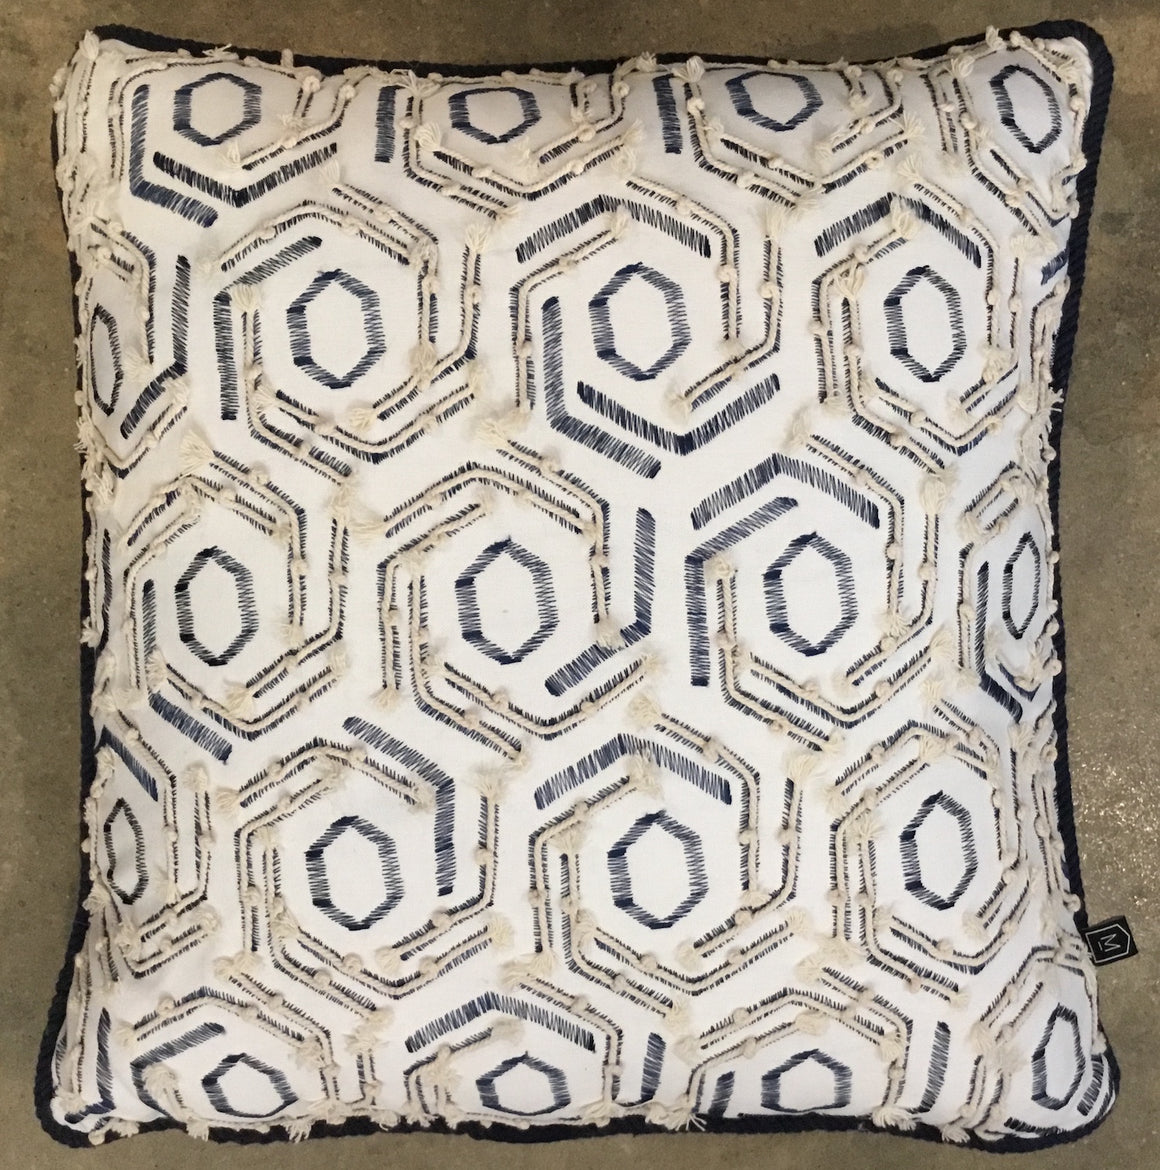 Textured Navy & White Cushion with Rope Detail and Piping